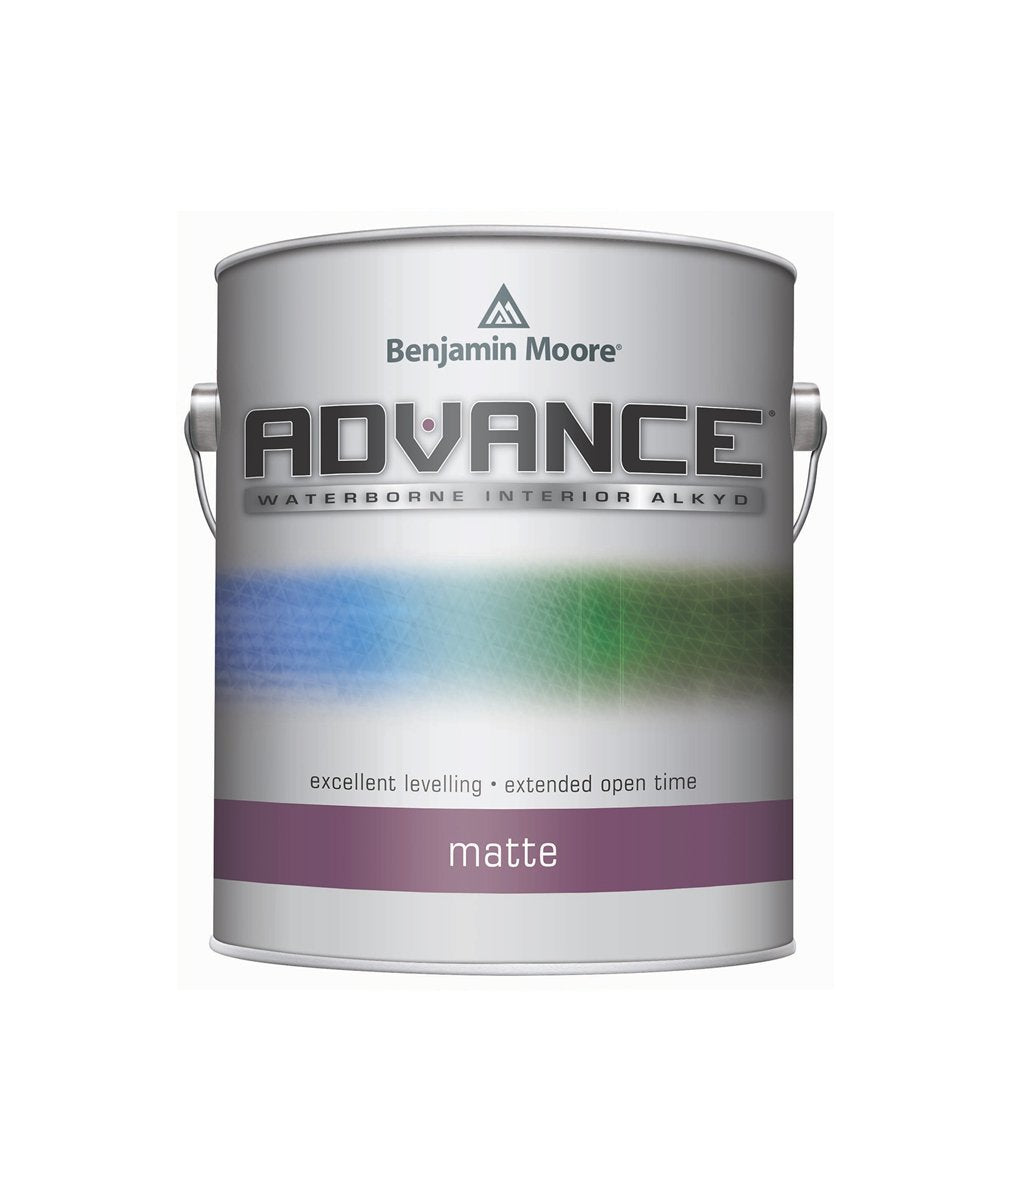 Benjamin Moore Advance Matte Paint available at Clement's Paint.